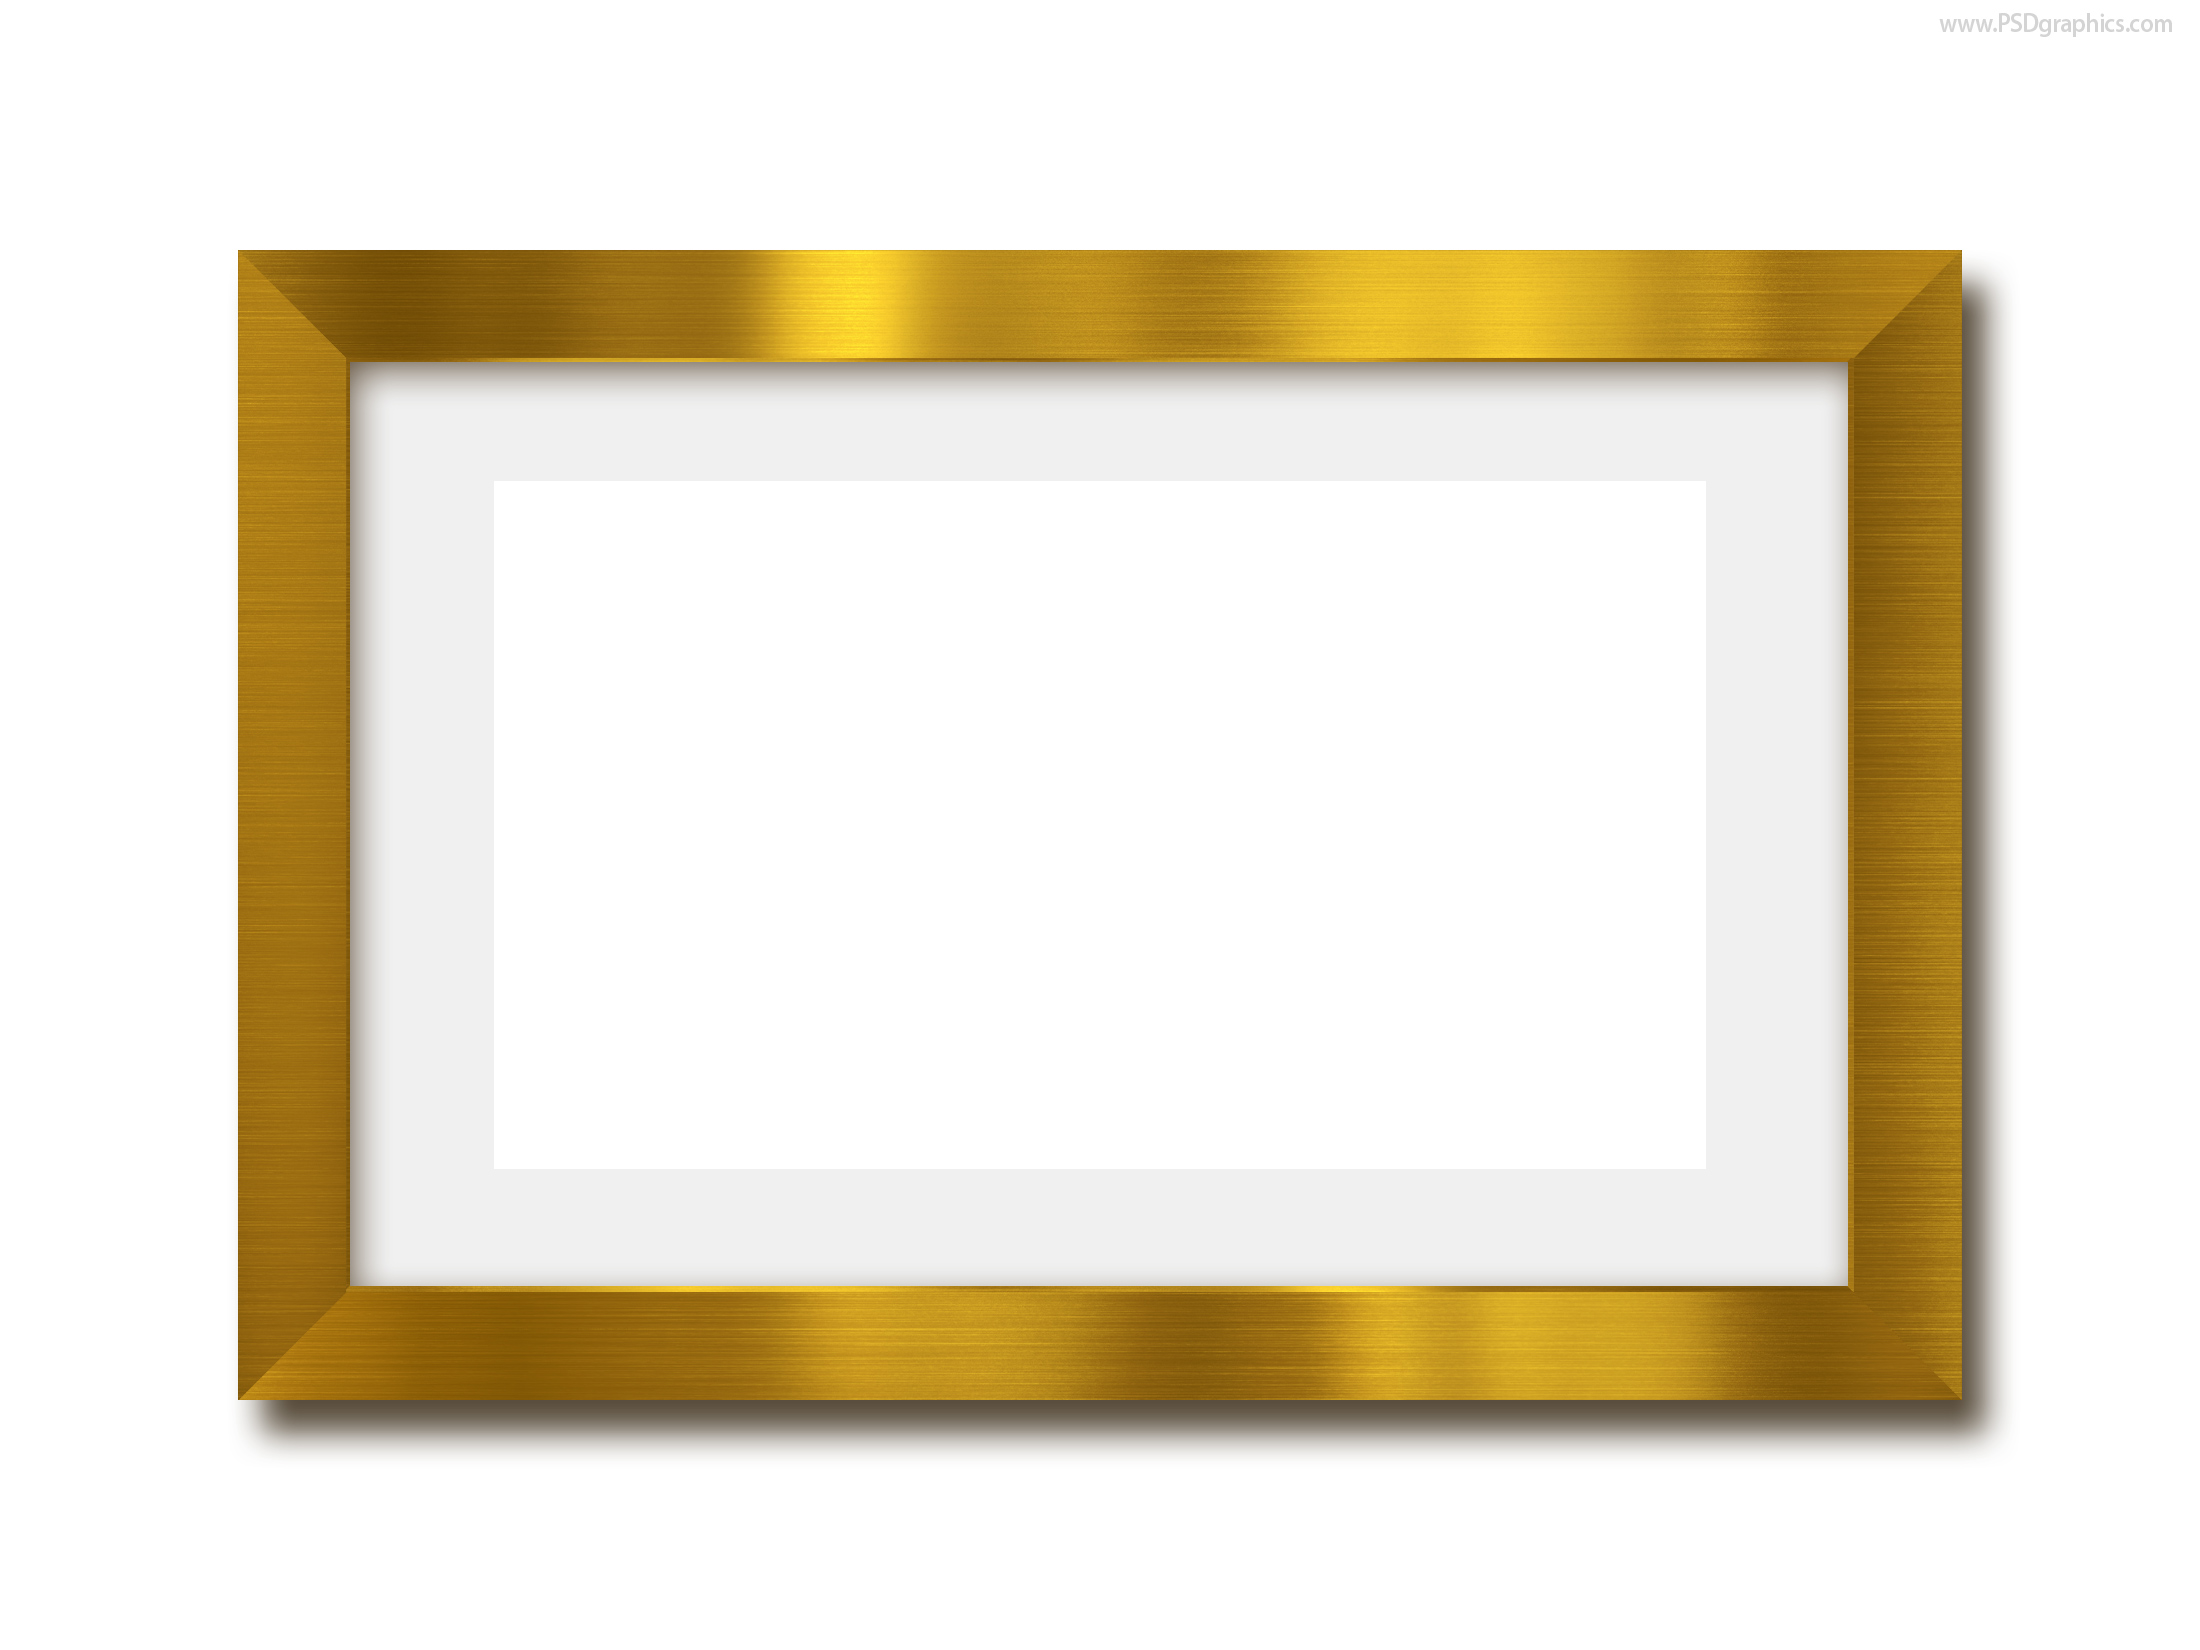 Gold photo frame PSD template | PSDGraphics